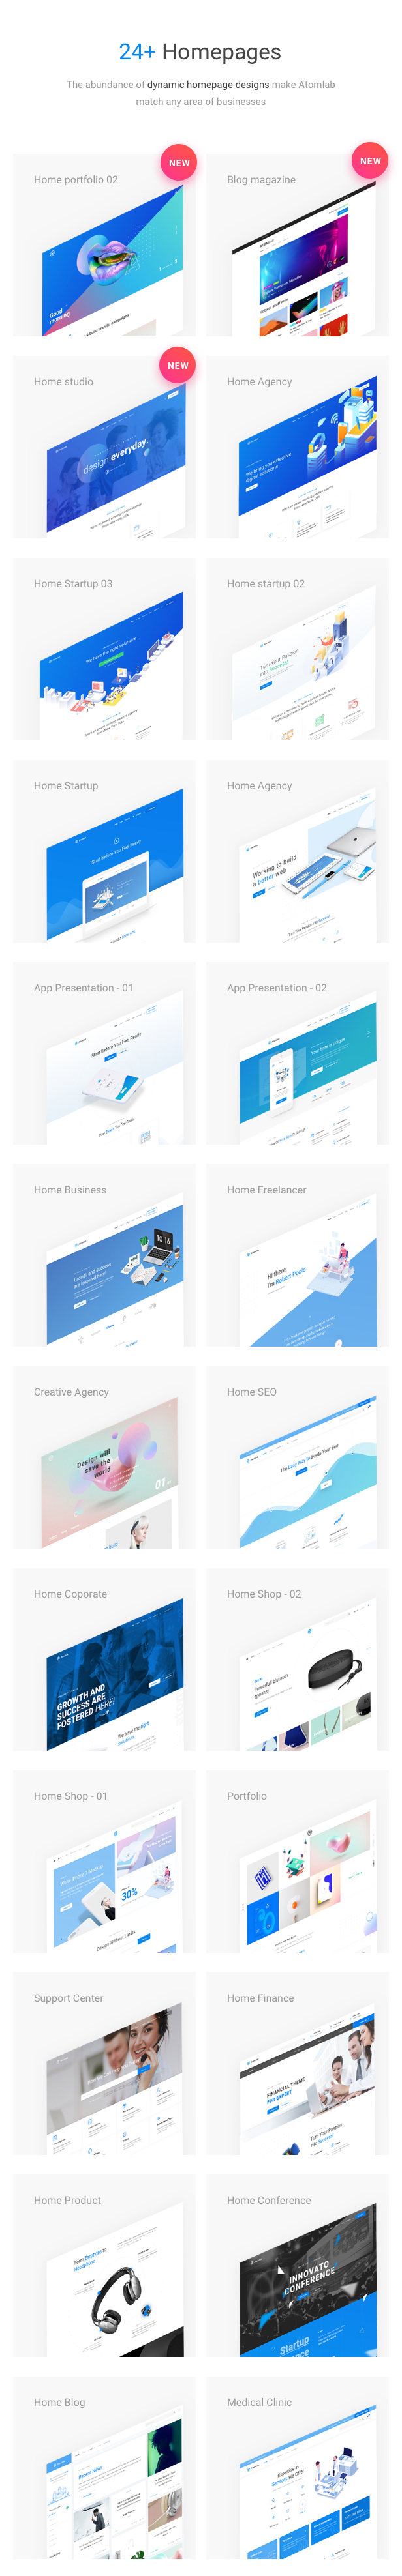 Startup WordPress Theme - 24+Homepages